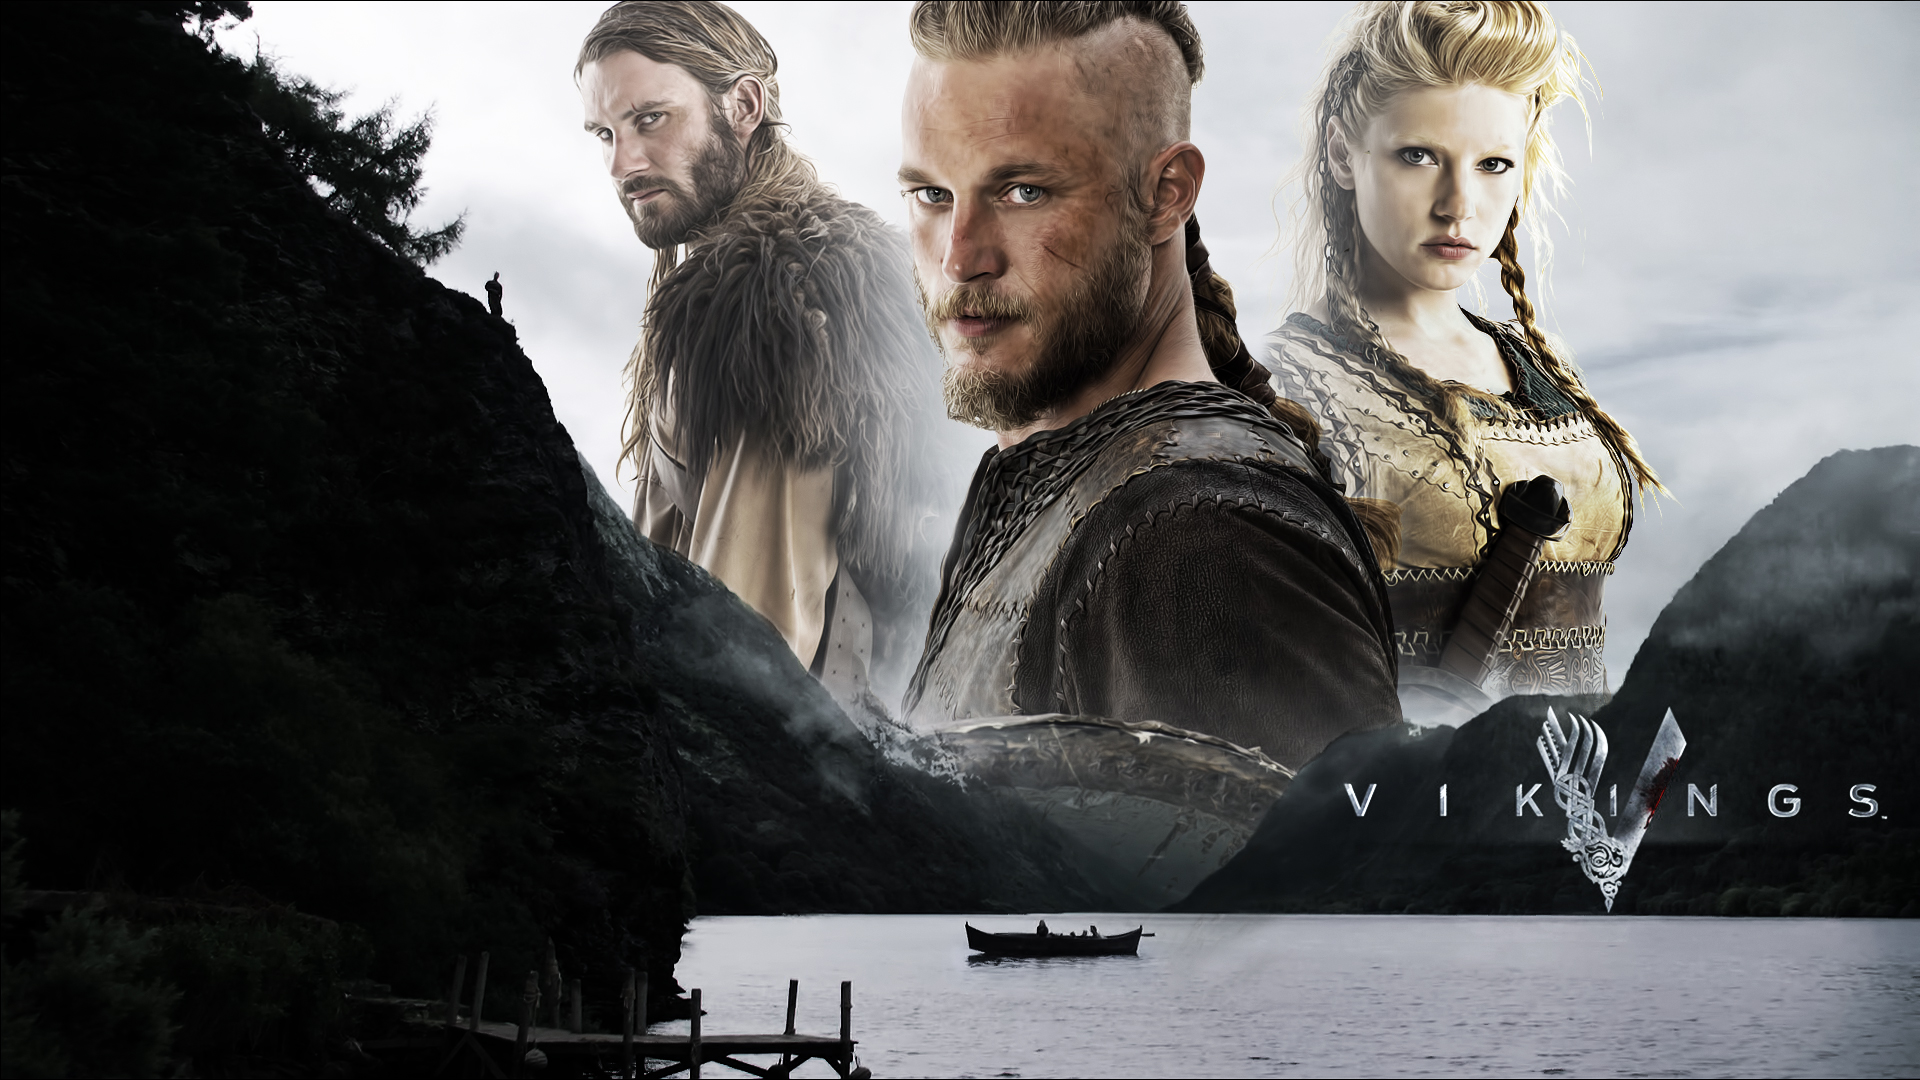 Vikings 2013 TV Series 1328.32 Kb